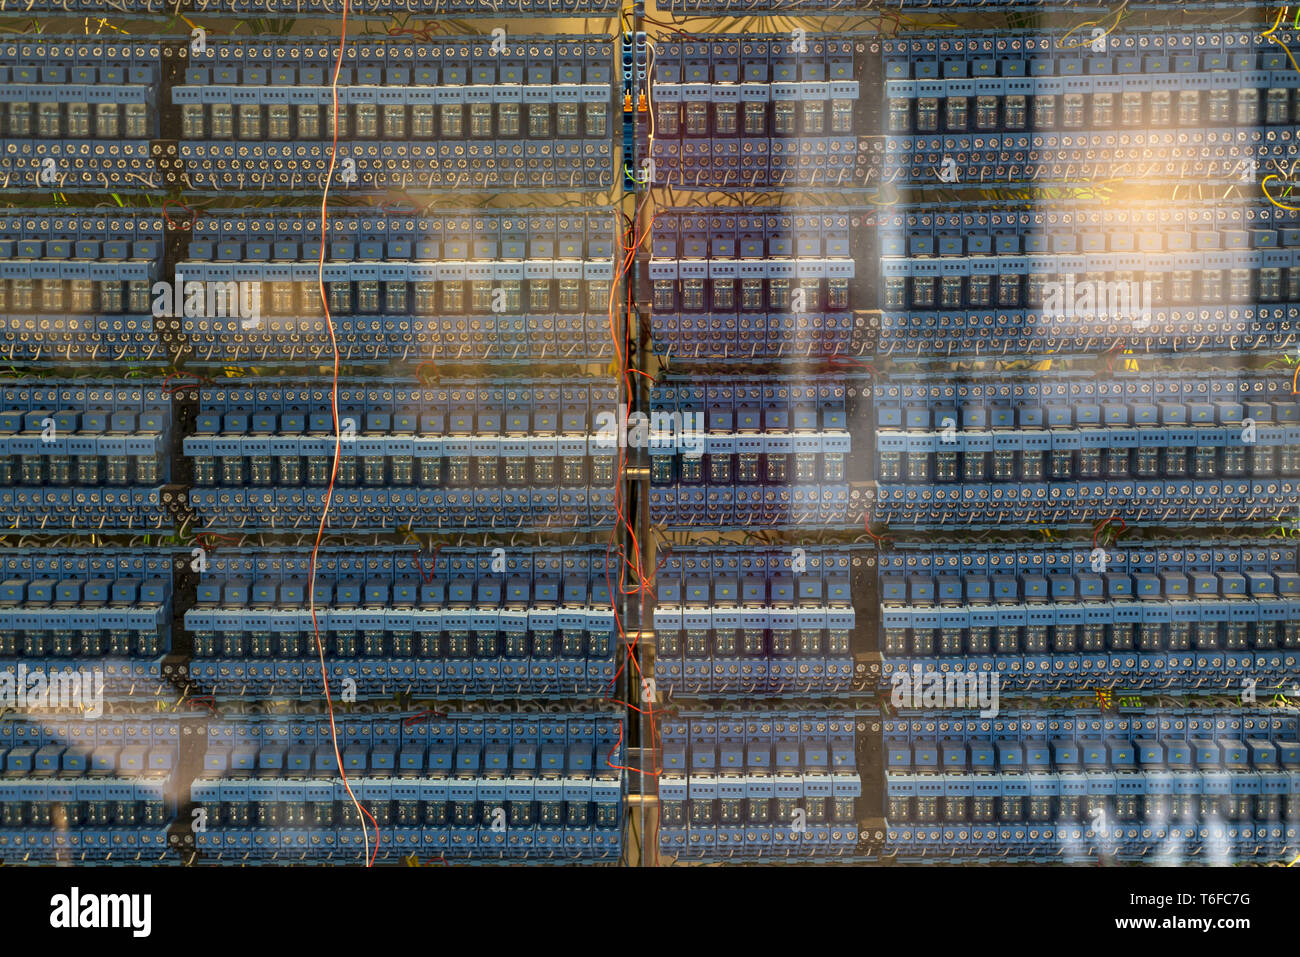 many old blue relays of an vintage computer - Stock Image